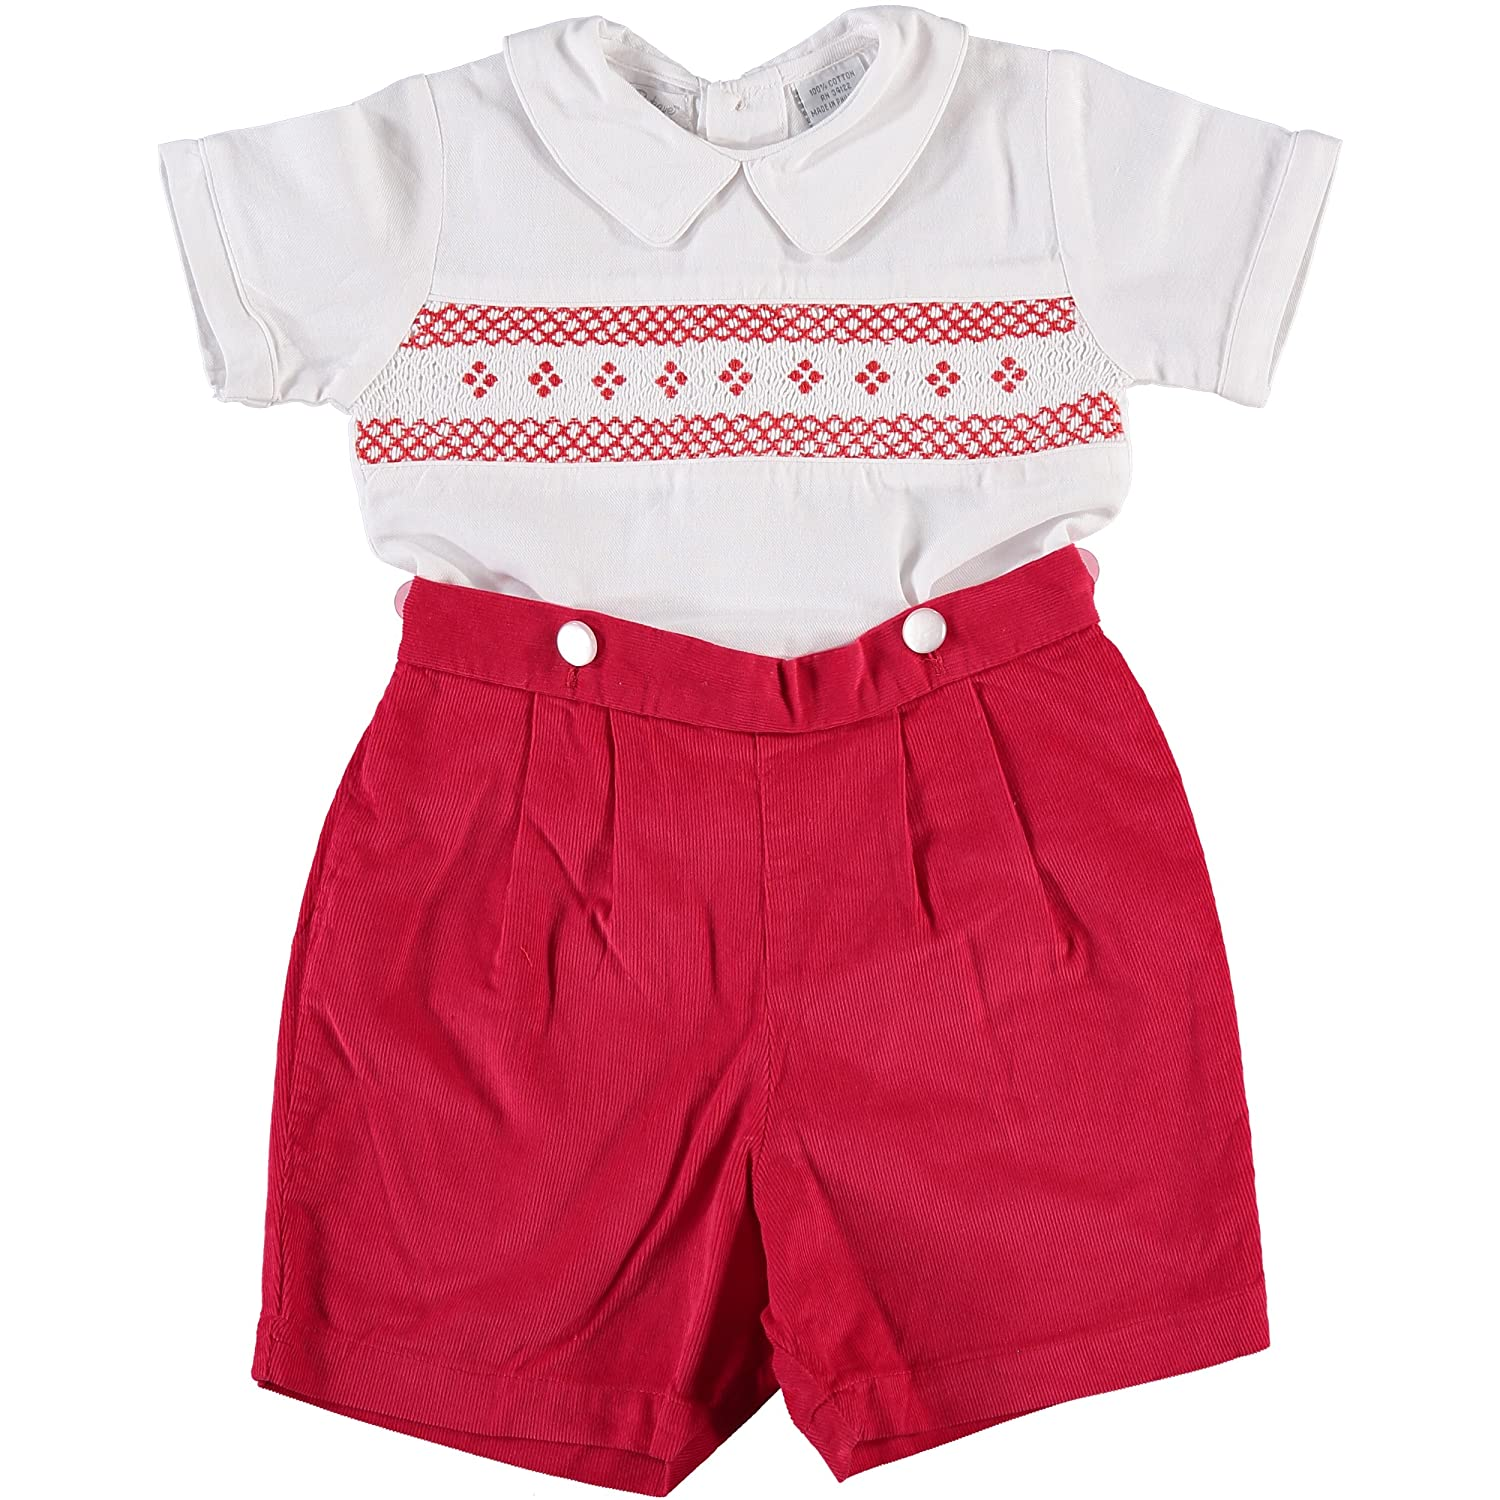 1940s Children's Clothing: Girls, Boys, Baby, Toddler Boys Diamond Smocking Red Corduroy Short Sleeve Bobbie Suit $49.00 AT vintagedancer.com